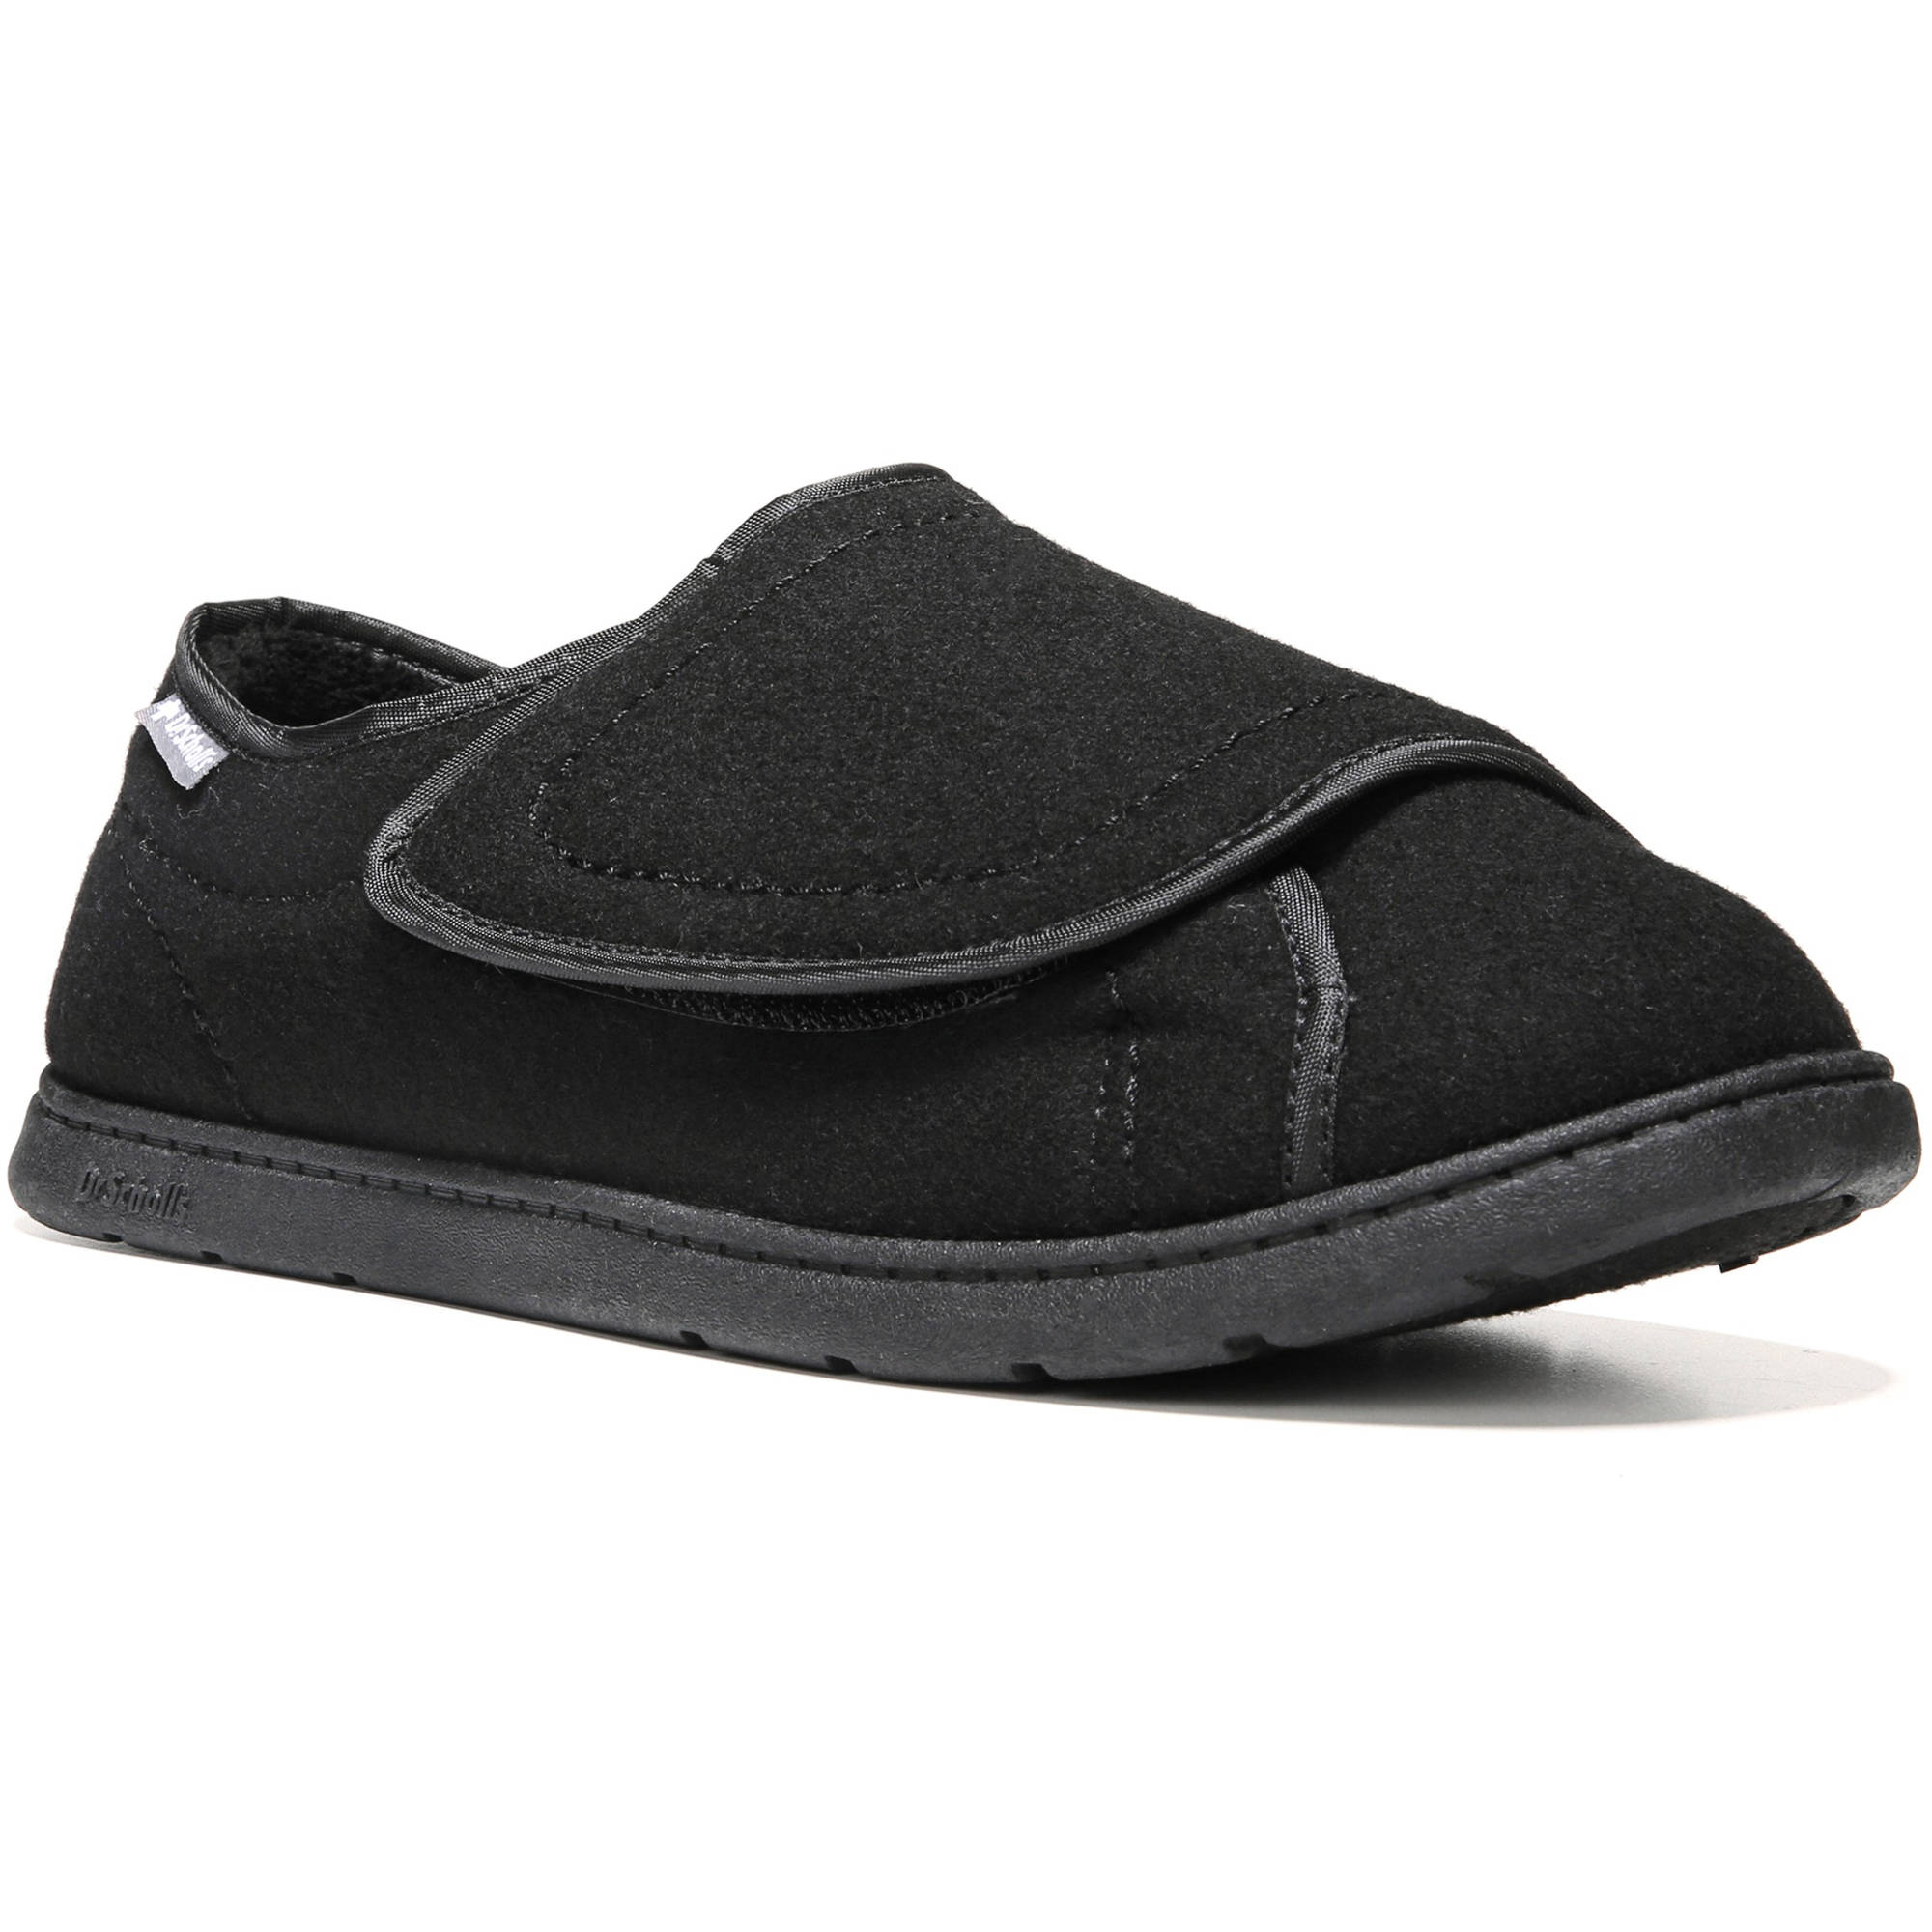 Dr. Scholls Men's Fletcher Therapeutic Slipper, Wide Width by